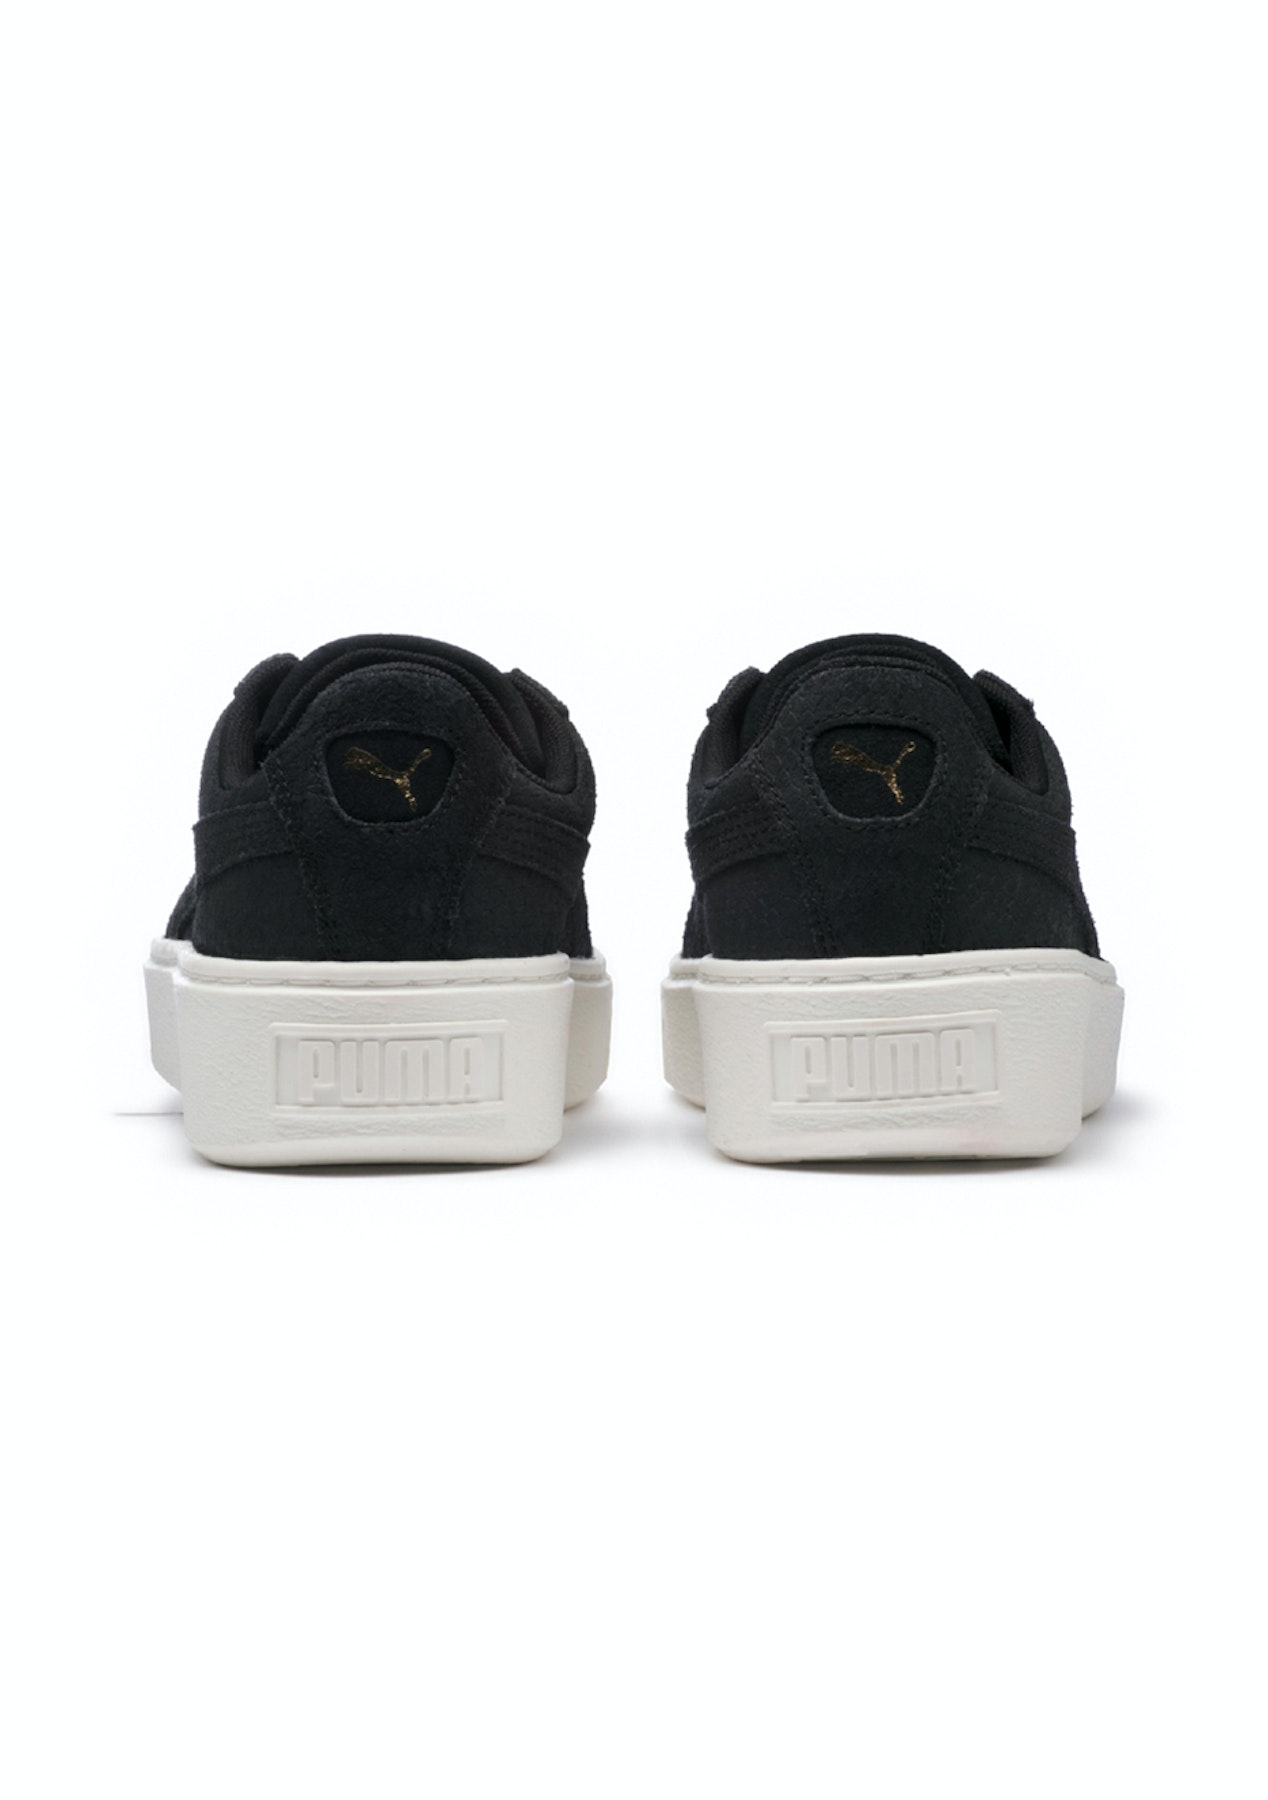 on sale e10f6 a392f Puma Womens - Puma Platform Euphoria Black